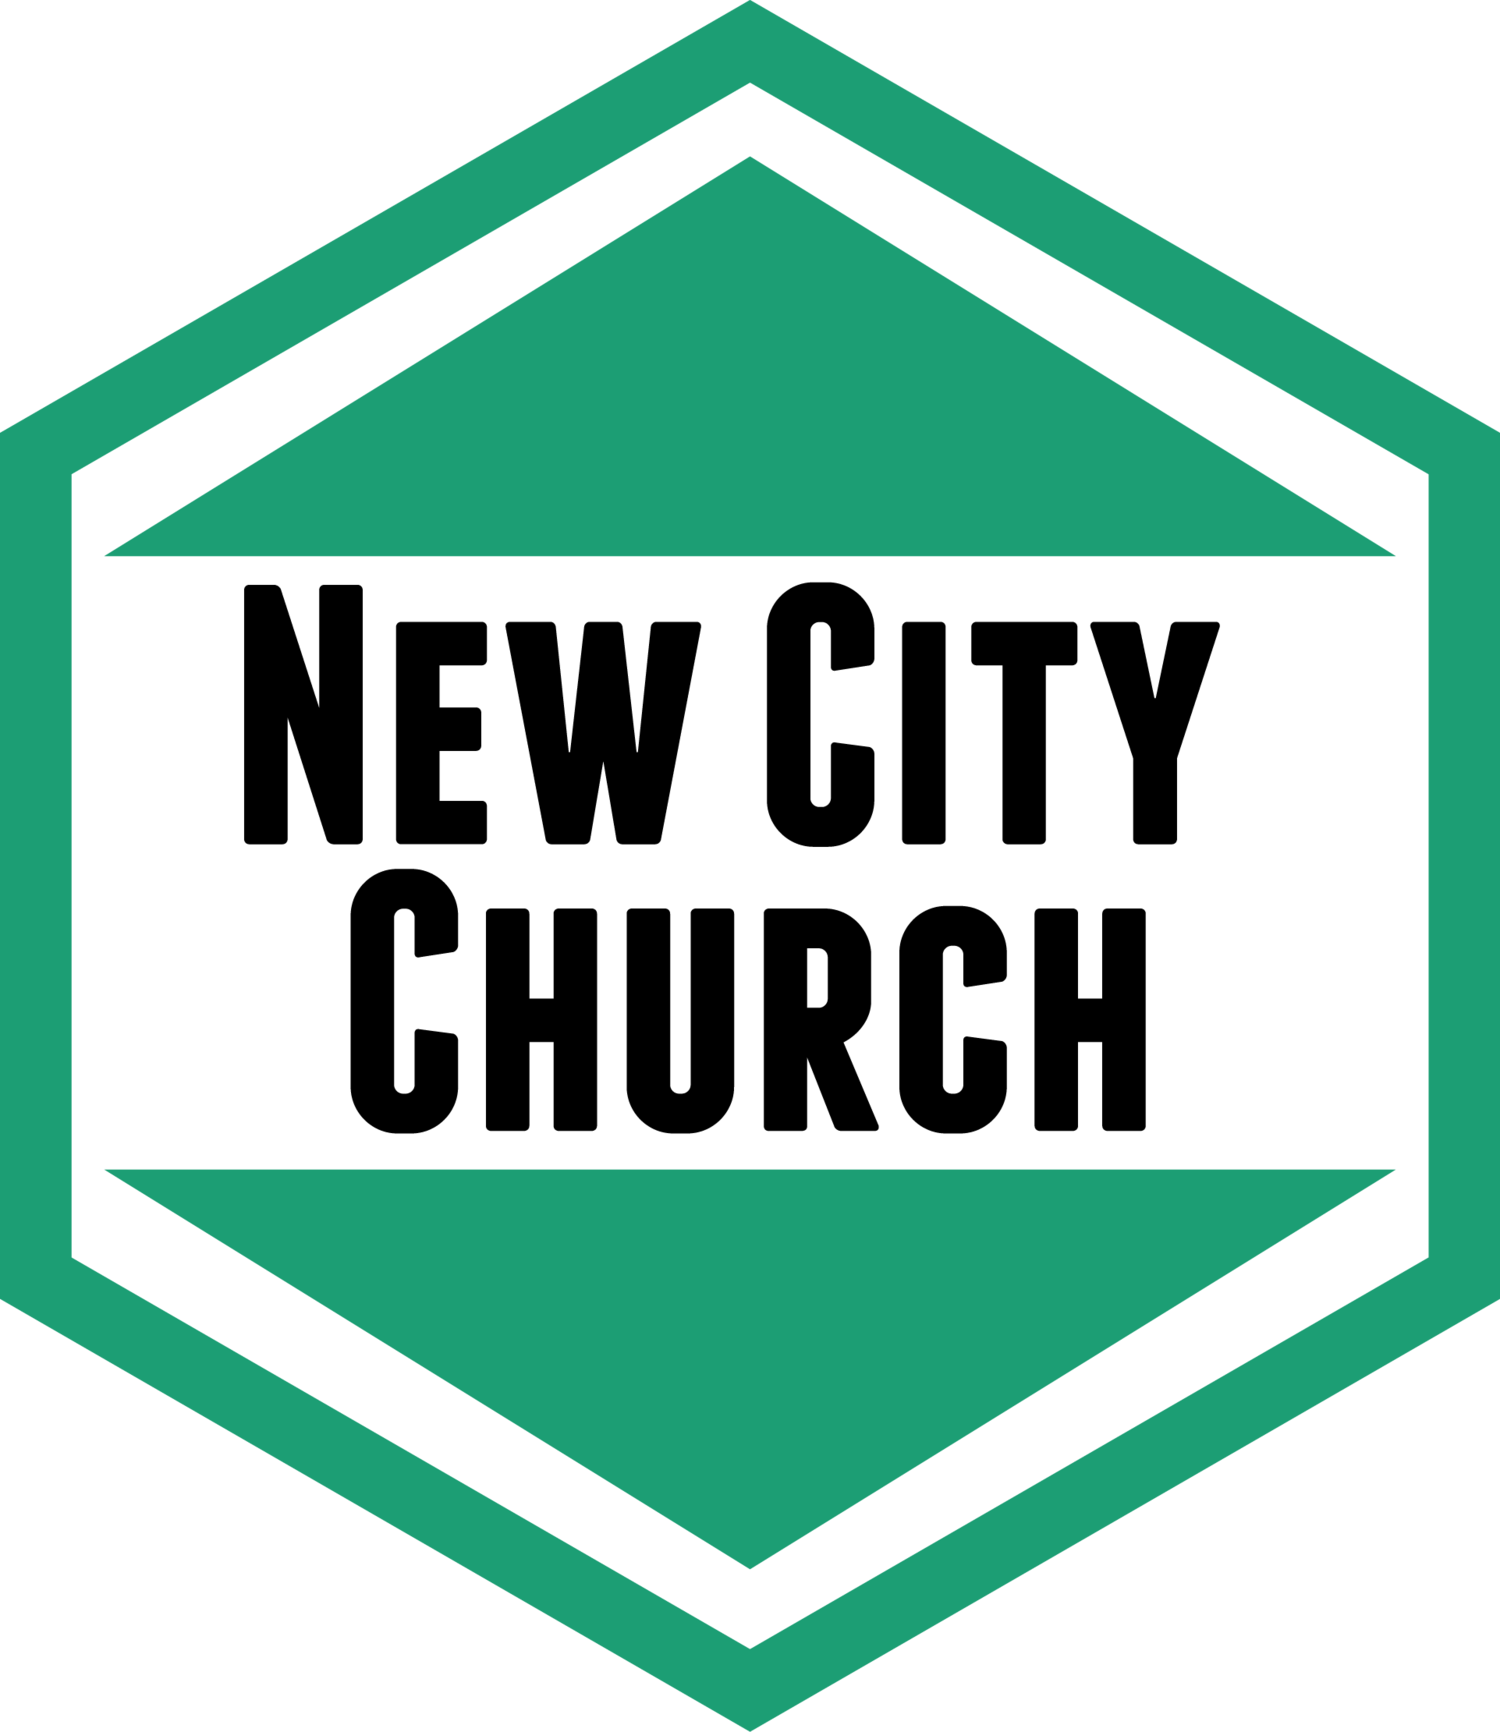 New City Church.